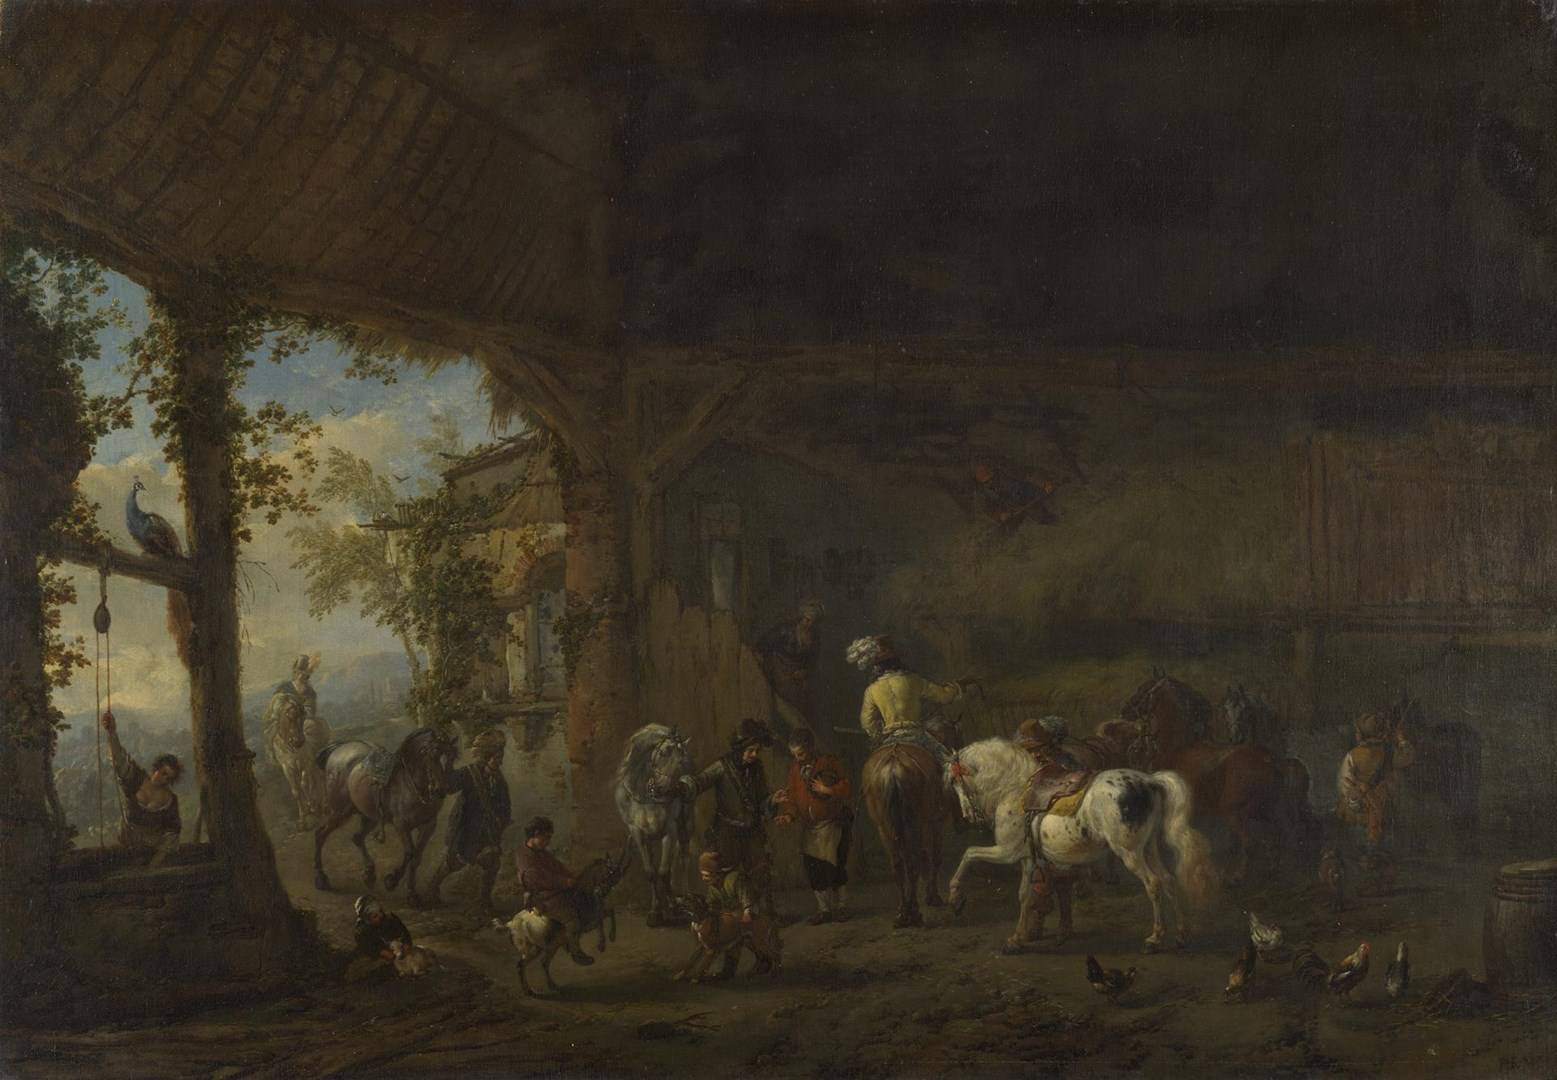 The Interior of a Stable by Philips Wouwerman